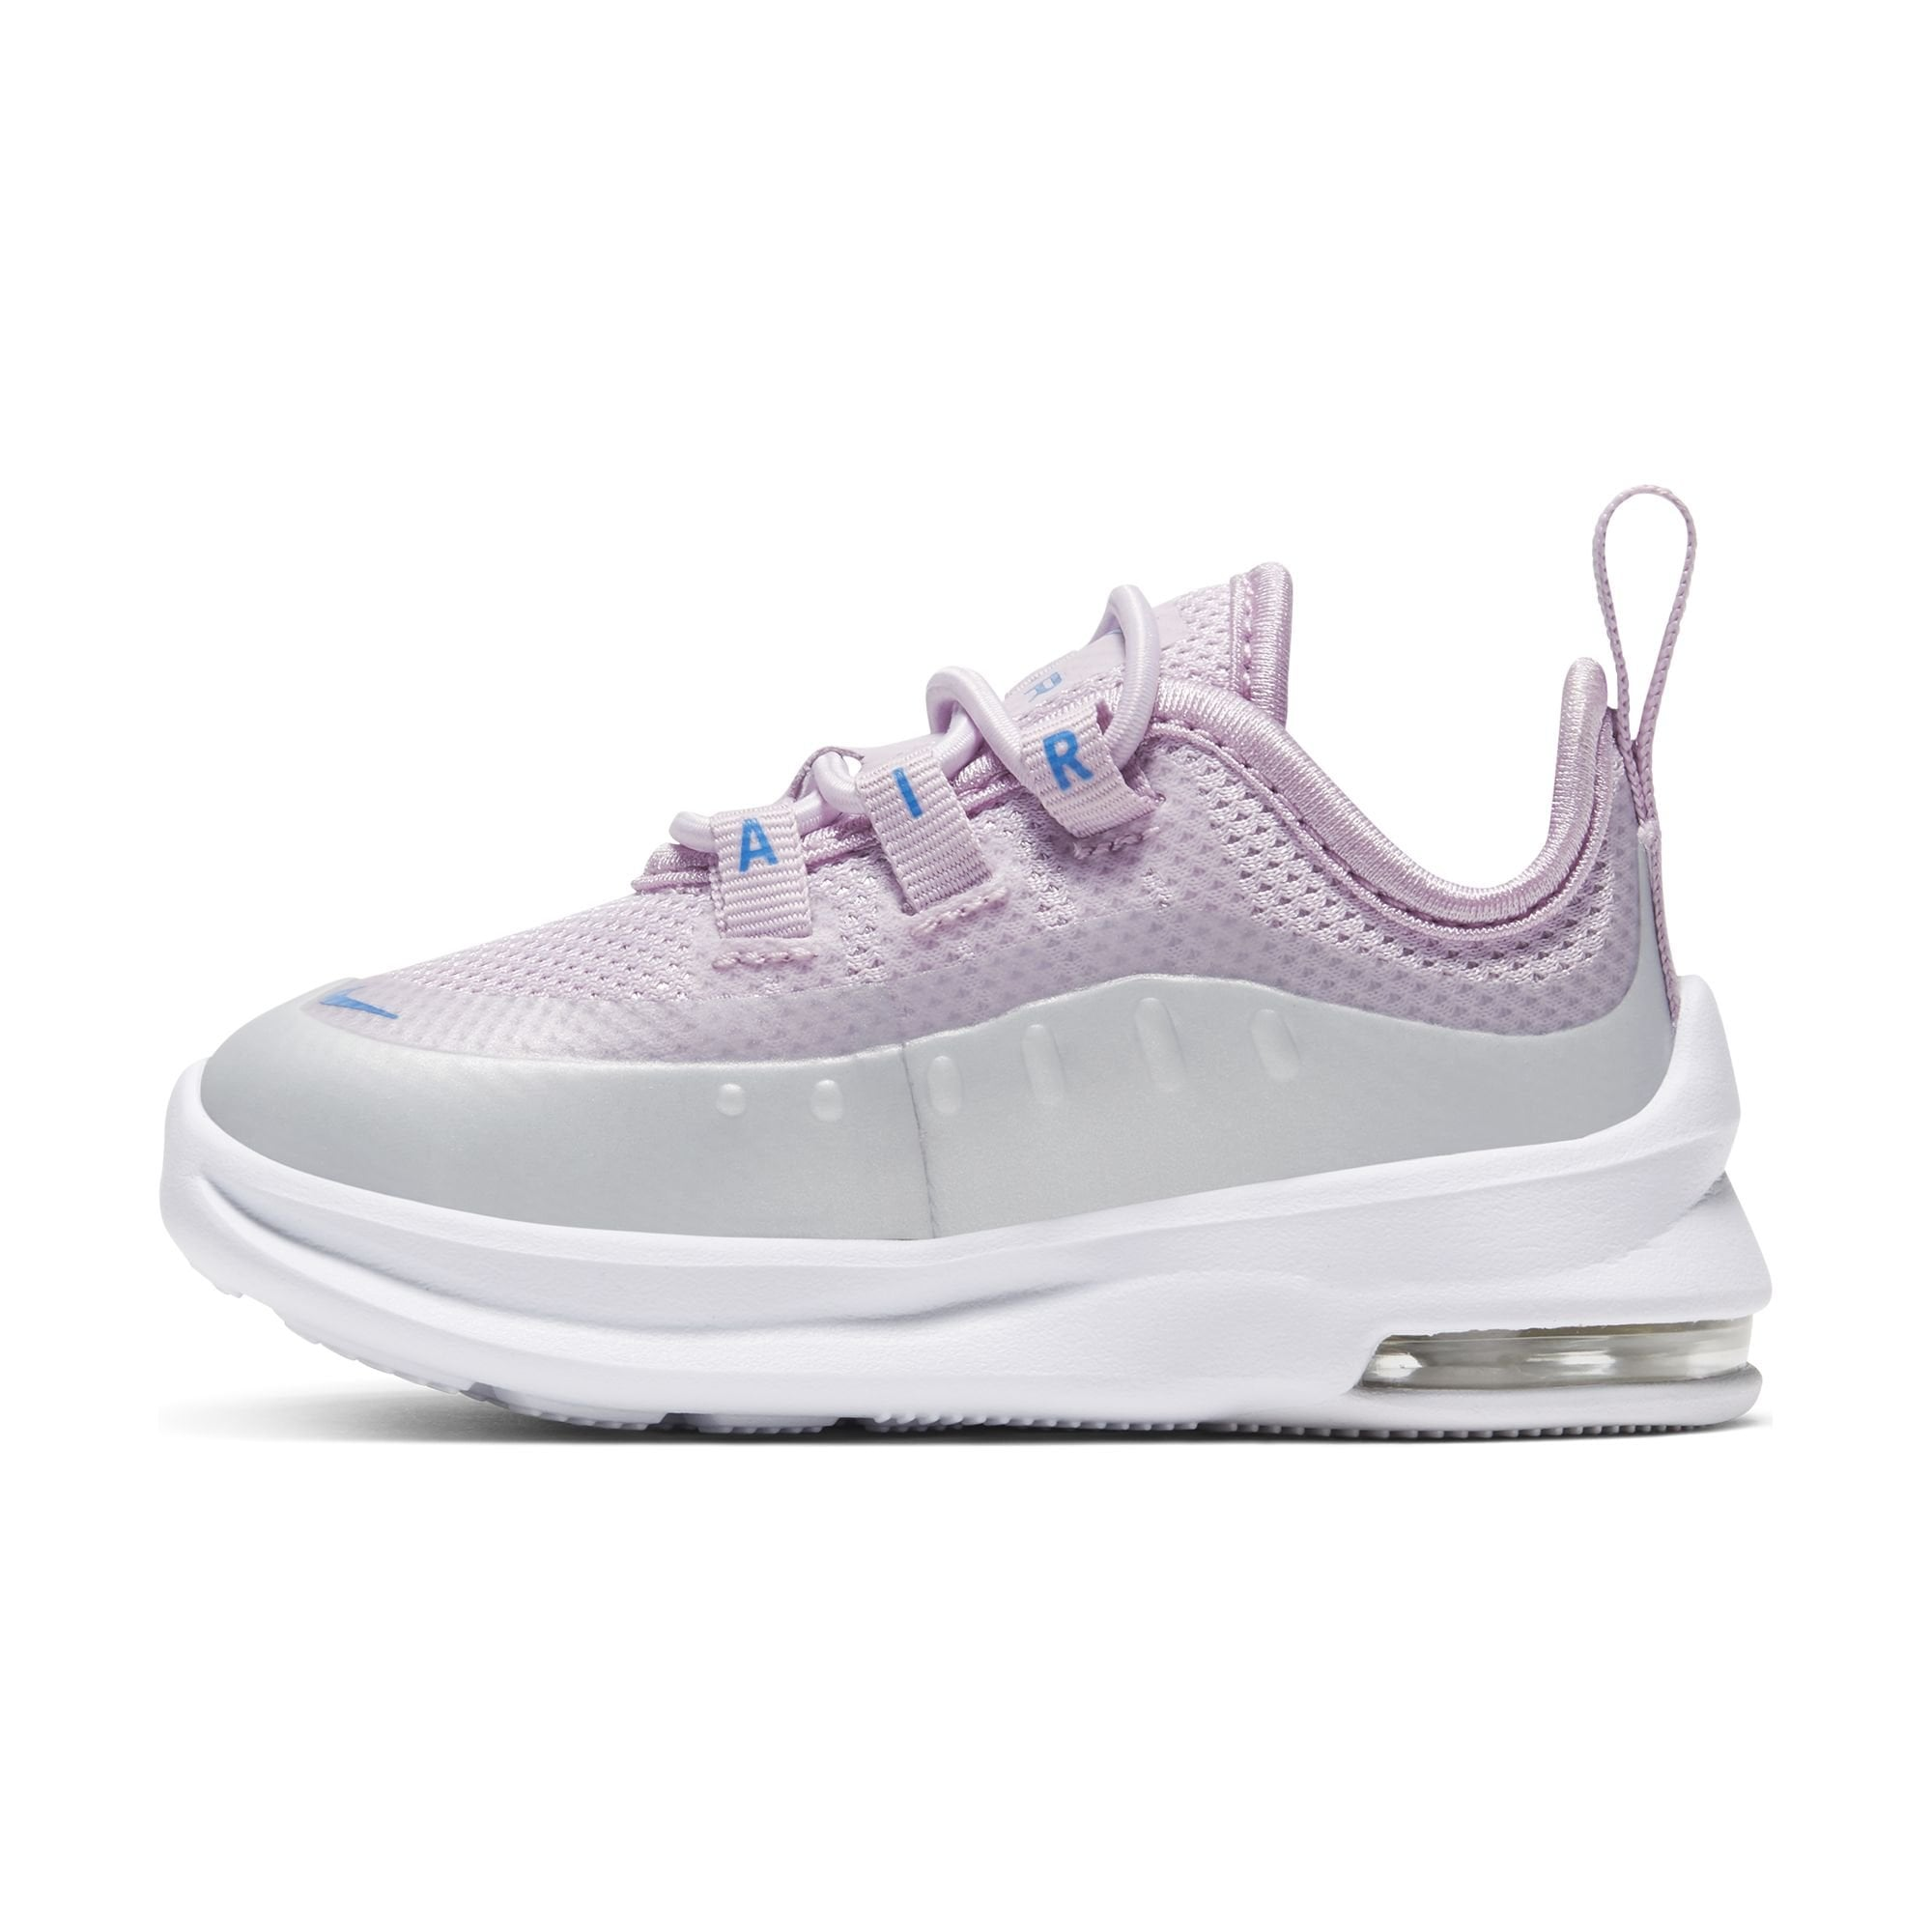 profesional de venta caliente gran surtido la venta de zapatos NIKE Nike Infants Air Max Axis (Lilac) - Kids from Loofes UK